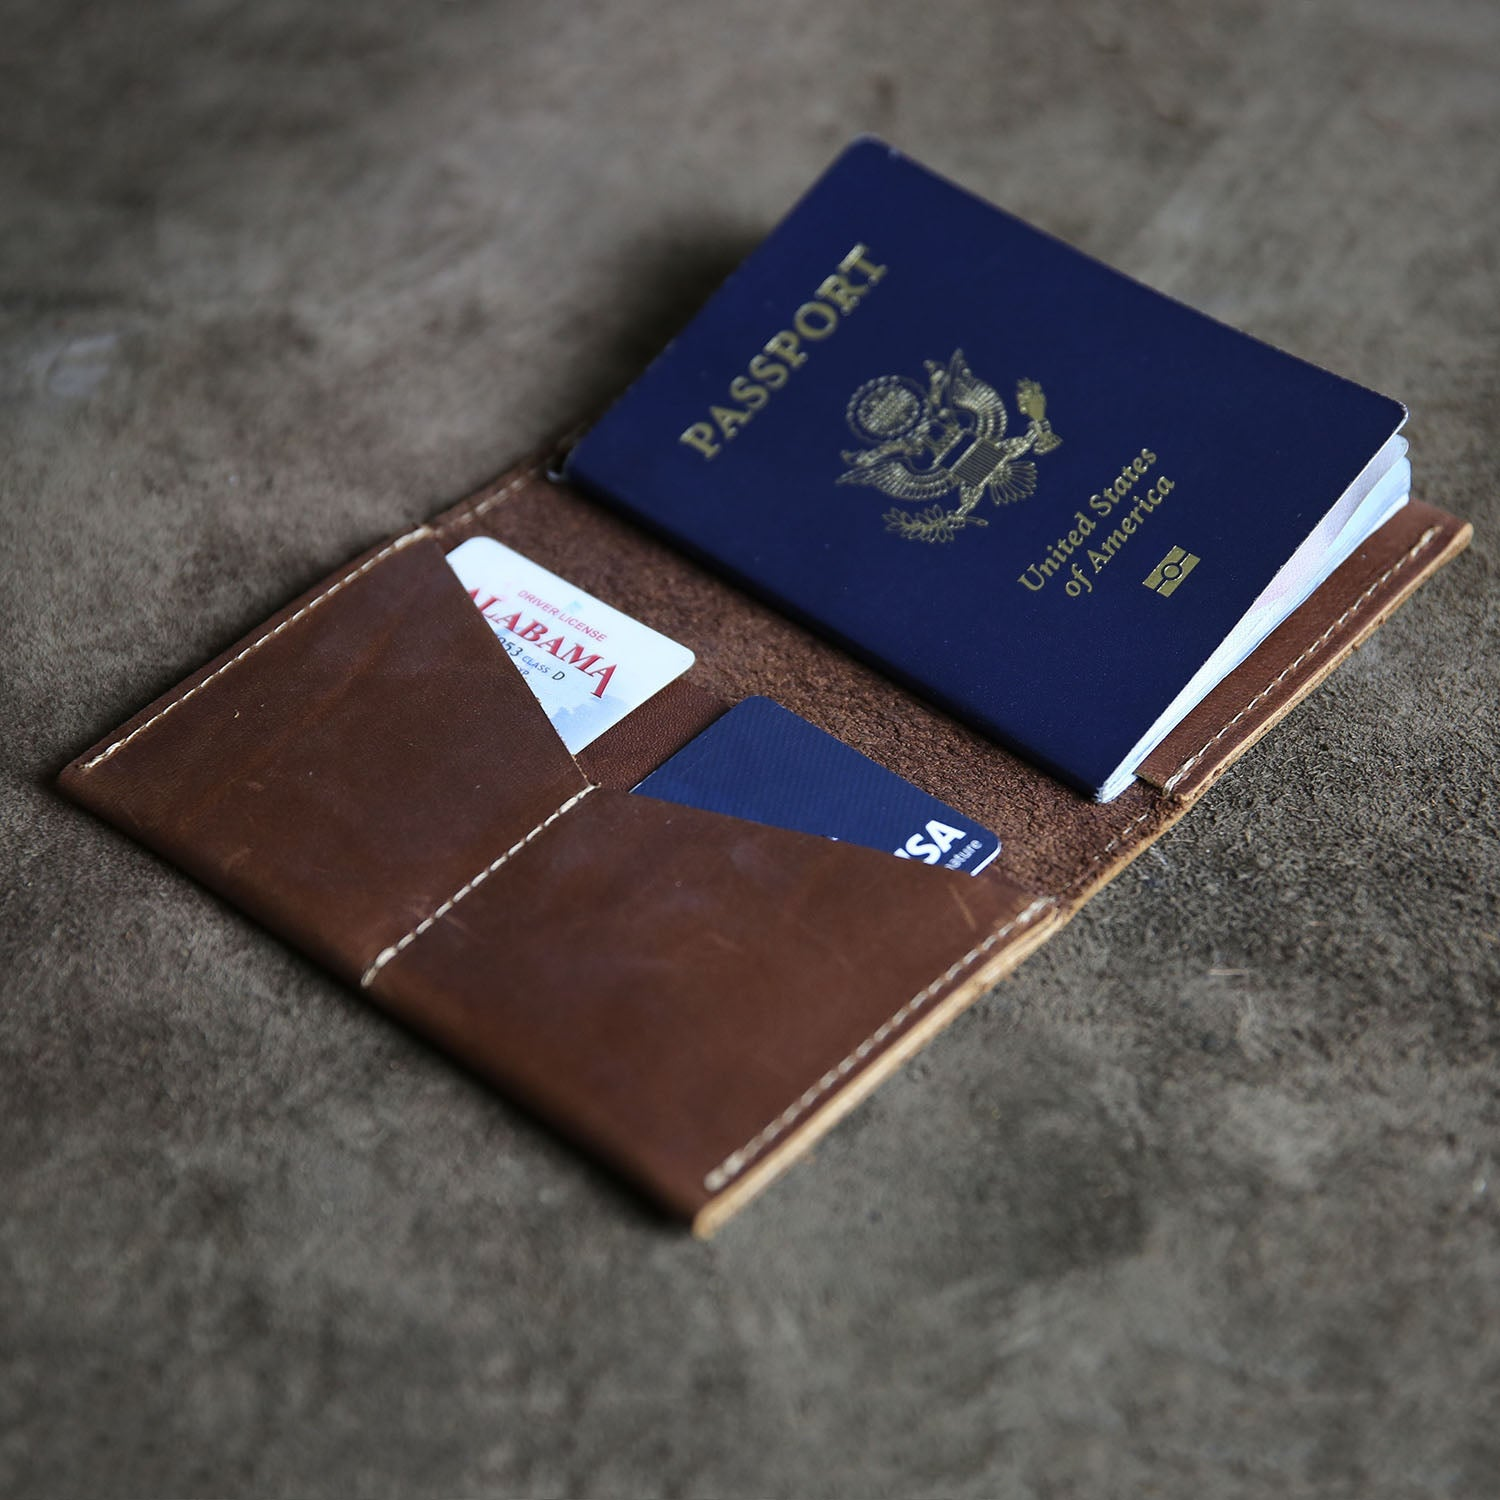 008eadffd The Officially Licensed Marine Corps Pioneer Fine Leather Passport Wallet  Passport Cover